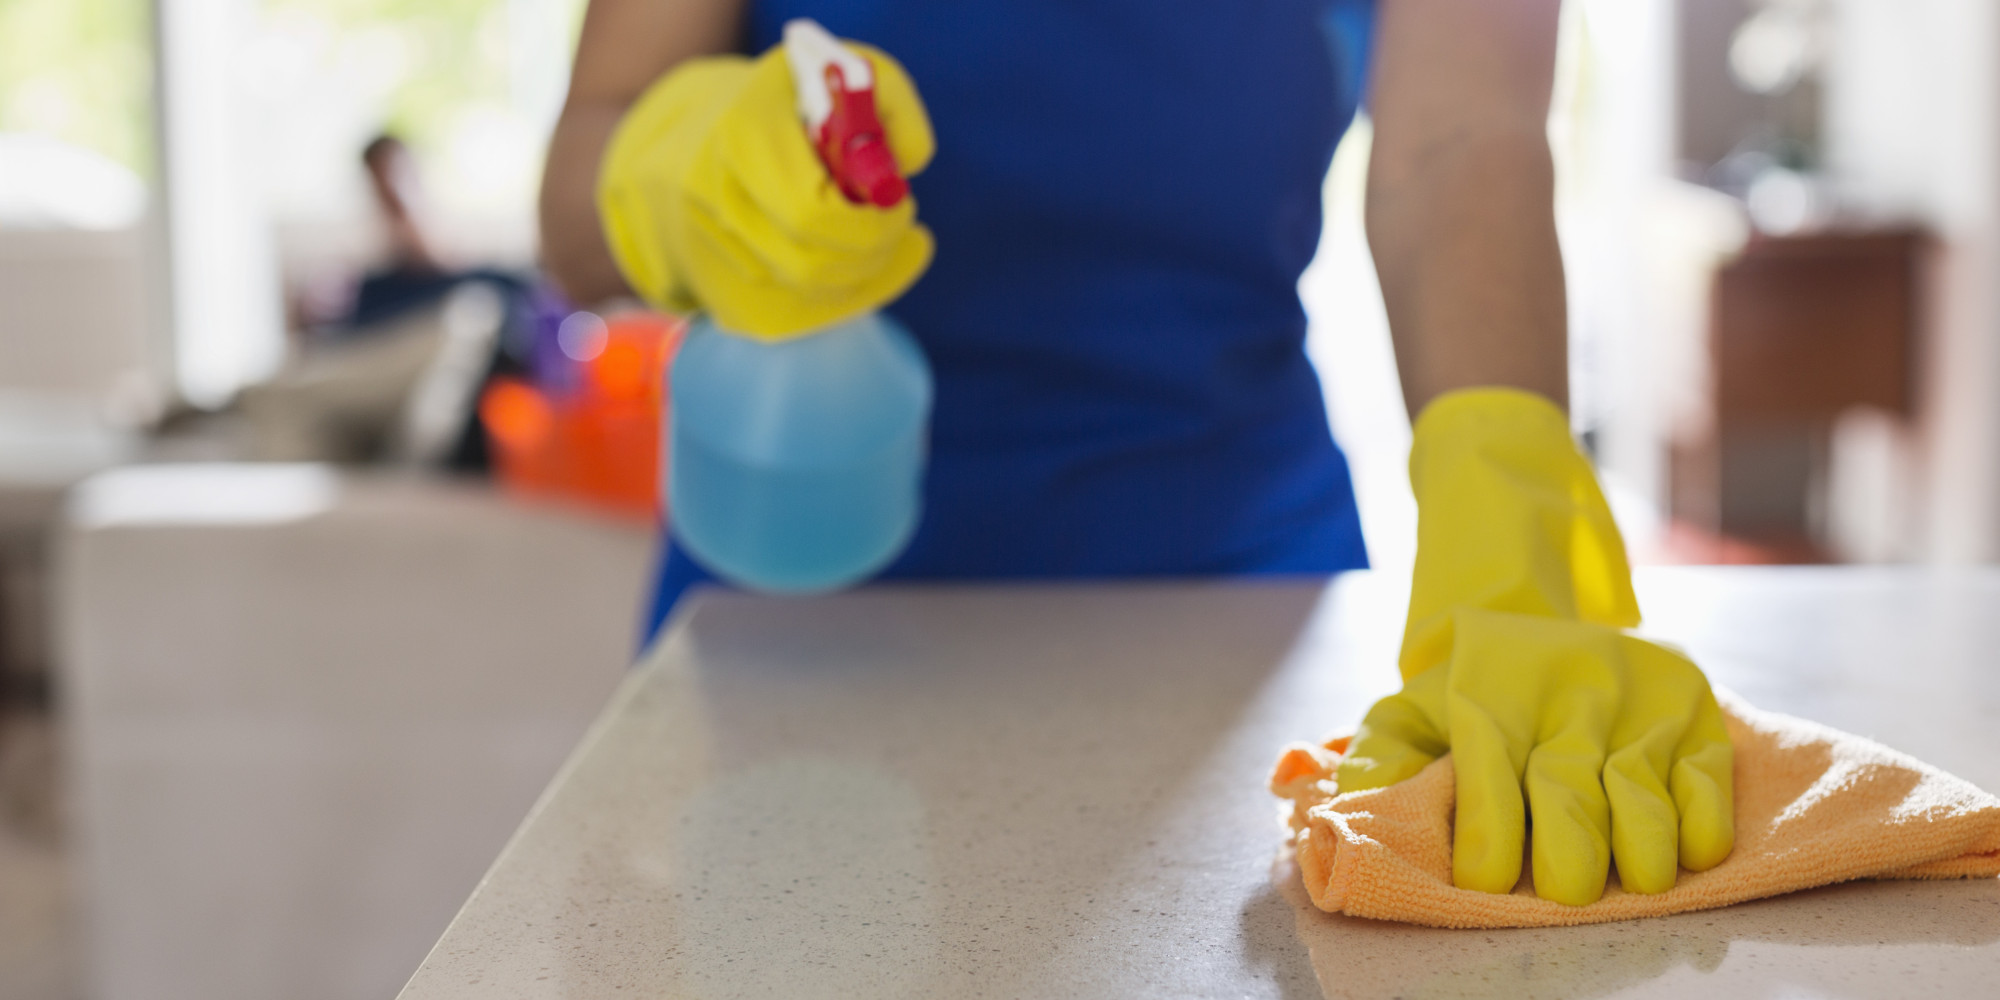 Cleaning, Disinfecting, and Sanitizing — What's the Difference?